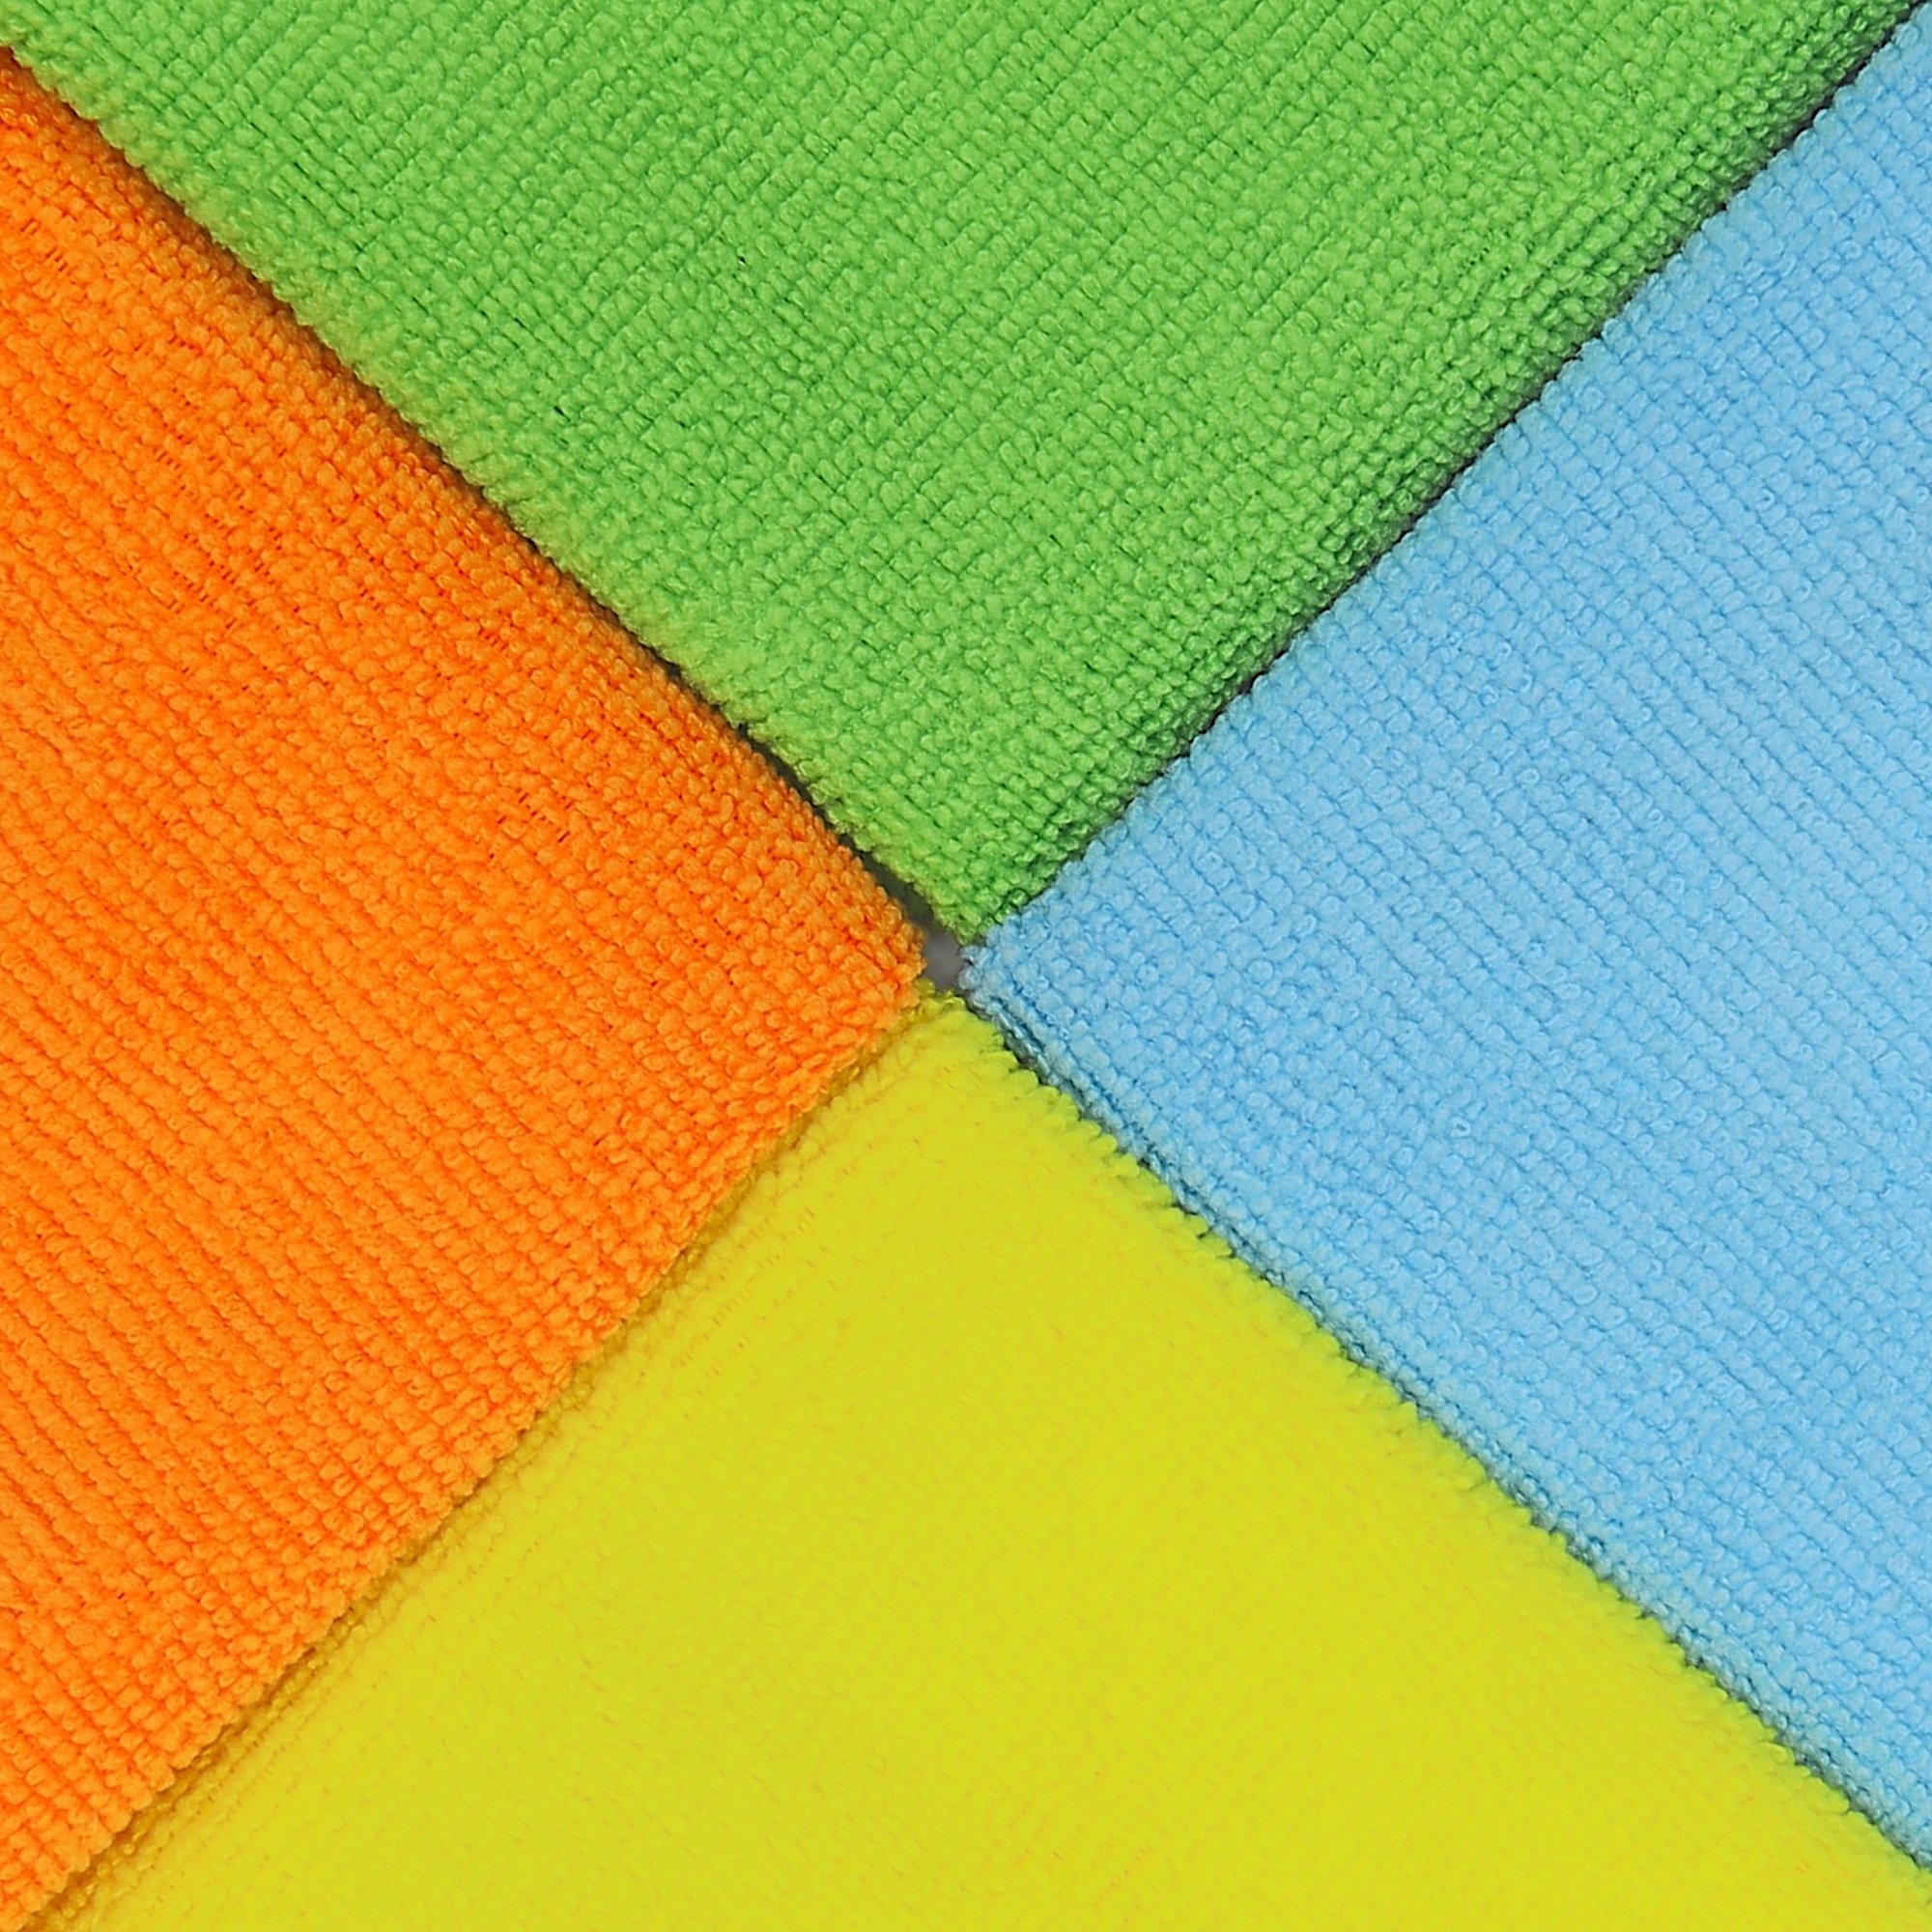 150 Pack - SimpleHouseware Microfiber Cleaning Cloth, 4 Colors by Simple Houseware (Image #3)